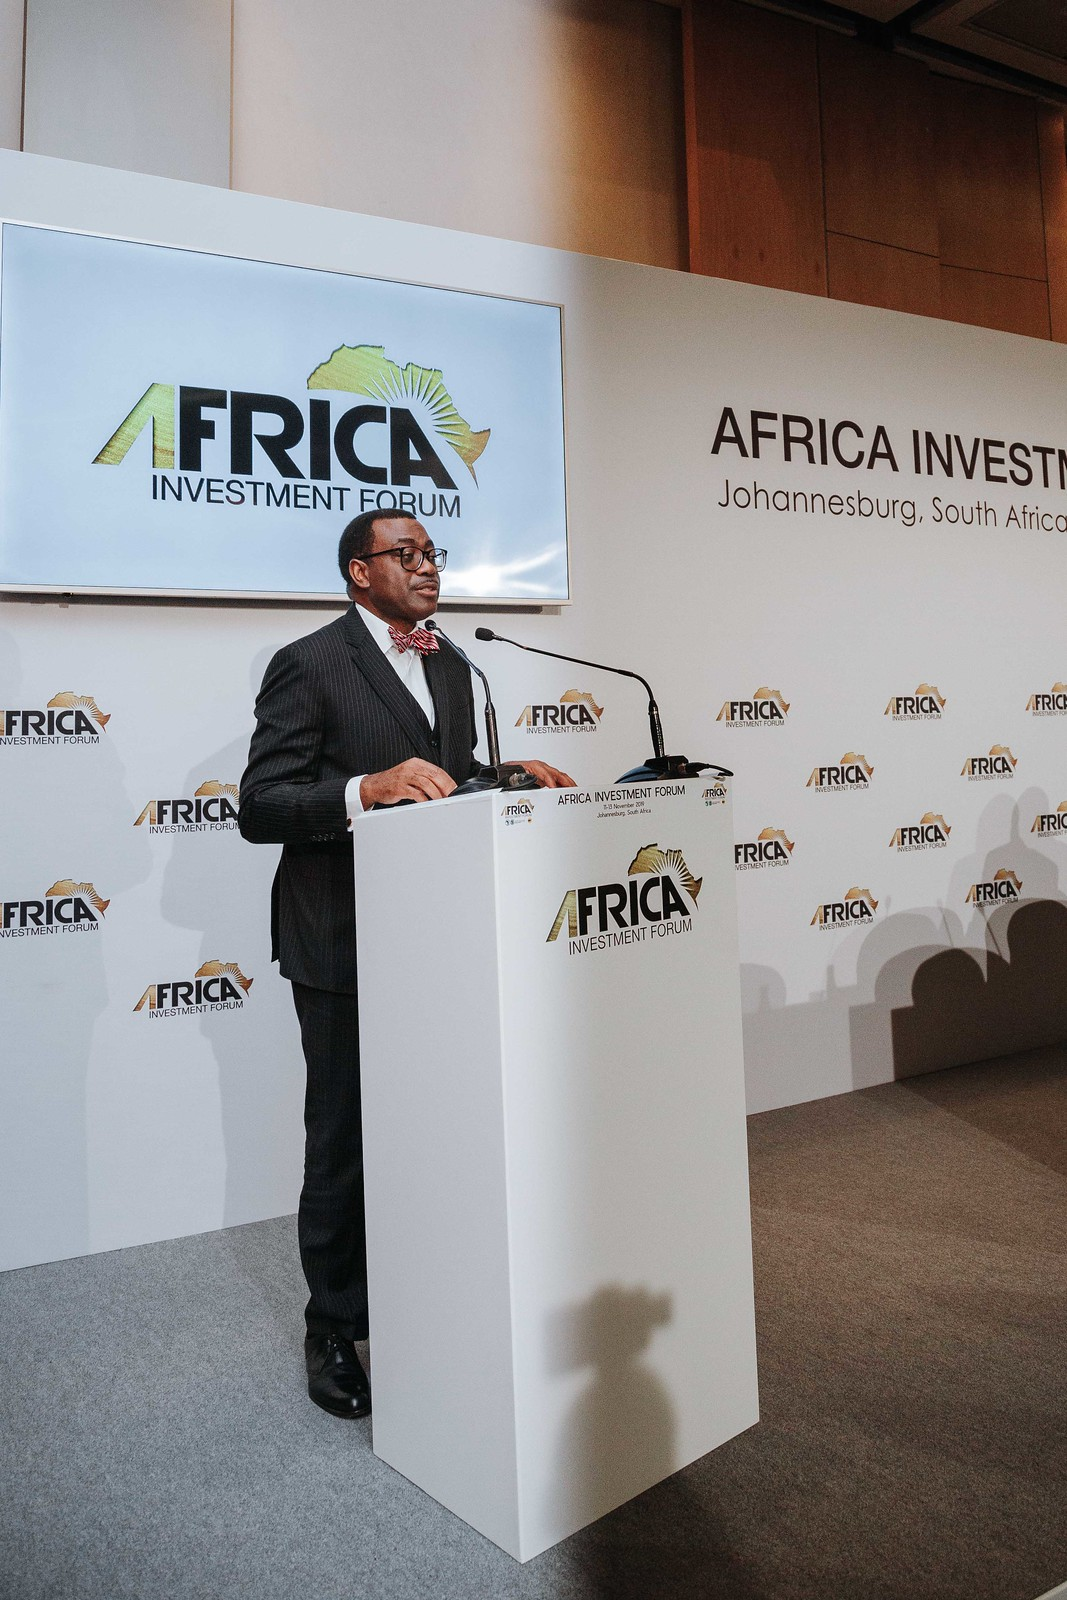 Africa Investment Forum 2019: Signing ceremony of the road-rail bridge between Kinshasa and Brazzaville and the extension of the Kinshasa-Ilebo railway